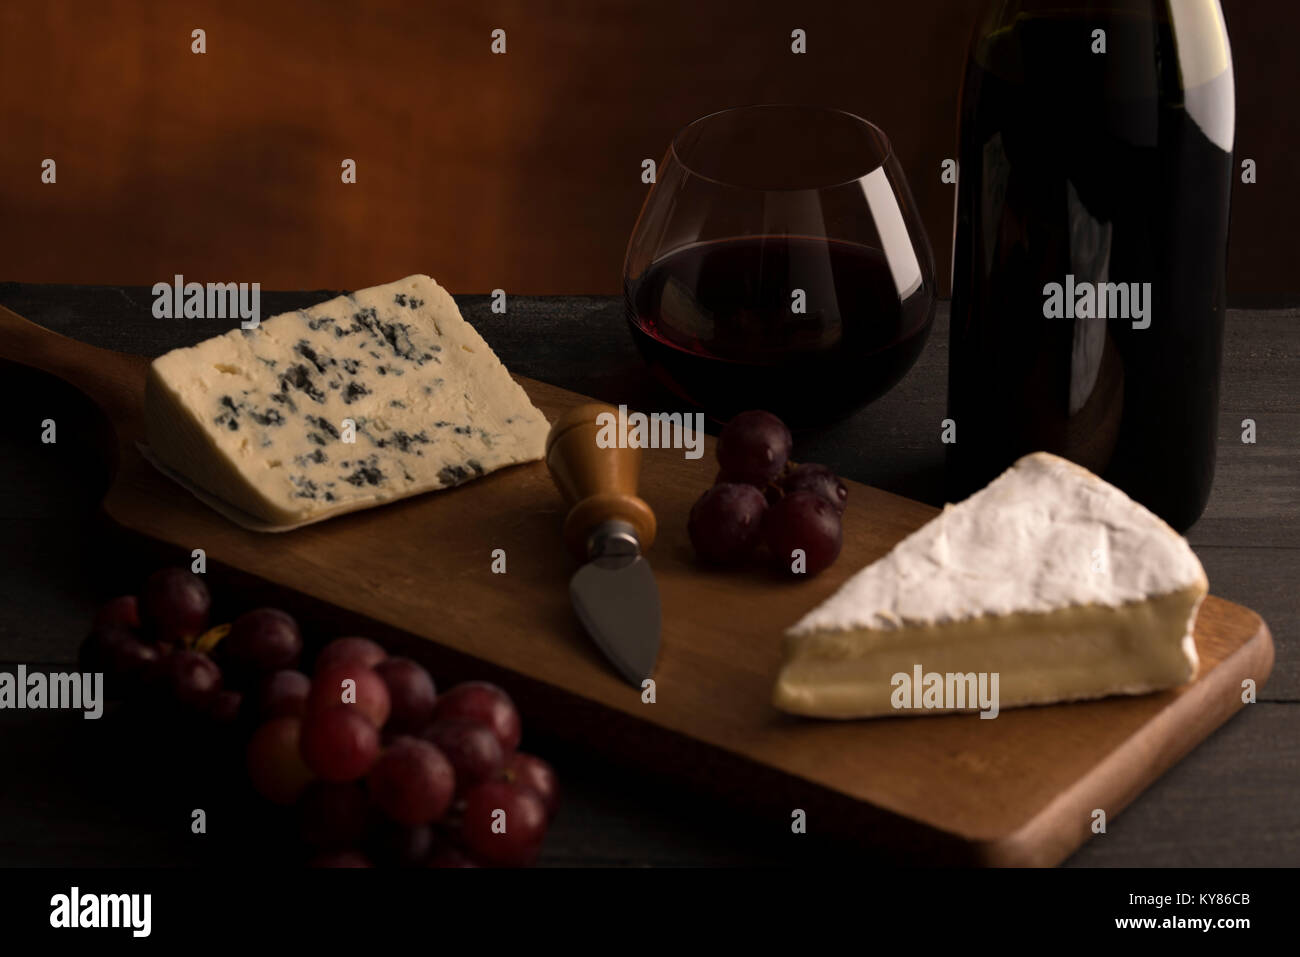 Red wine in stemless glass with wine bottle red grapes  and cheese - Stock Image